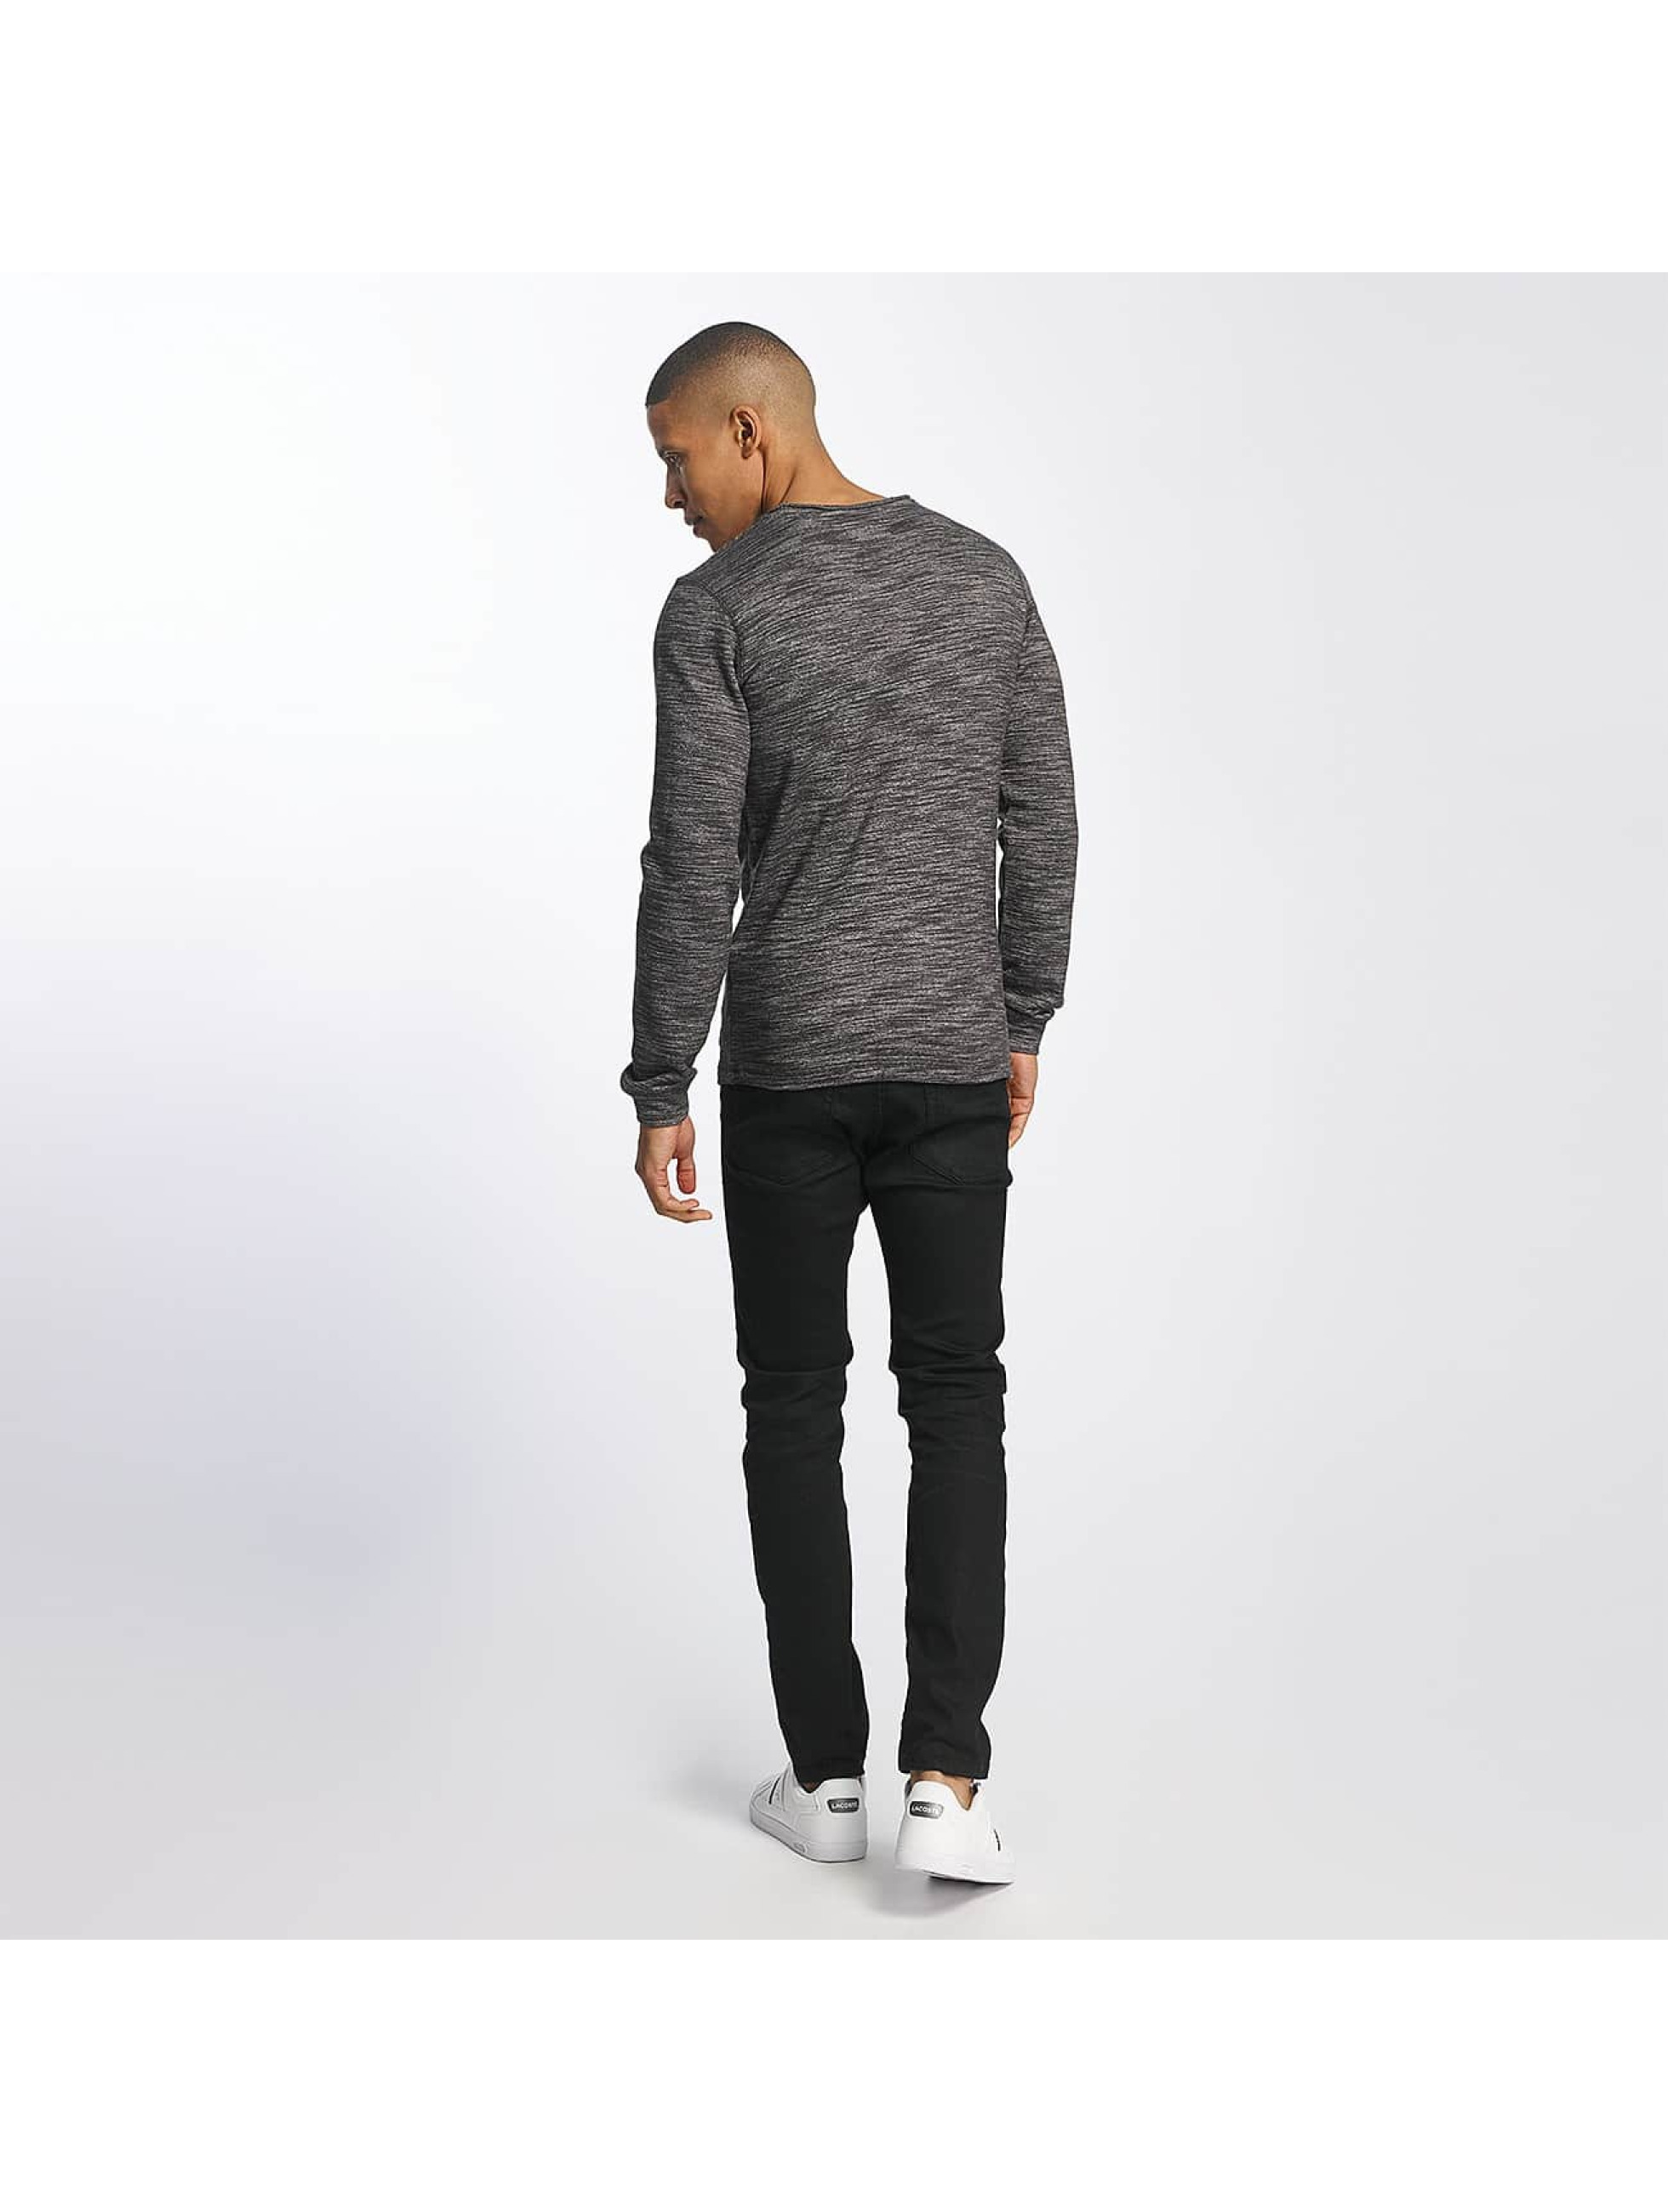 SHINE Original Jumper Malcom Pocket Inside Out grey